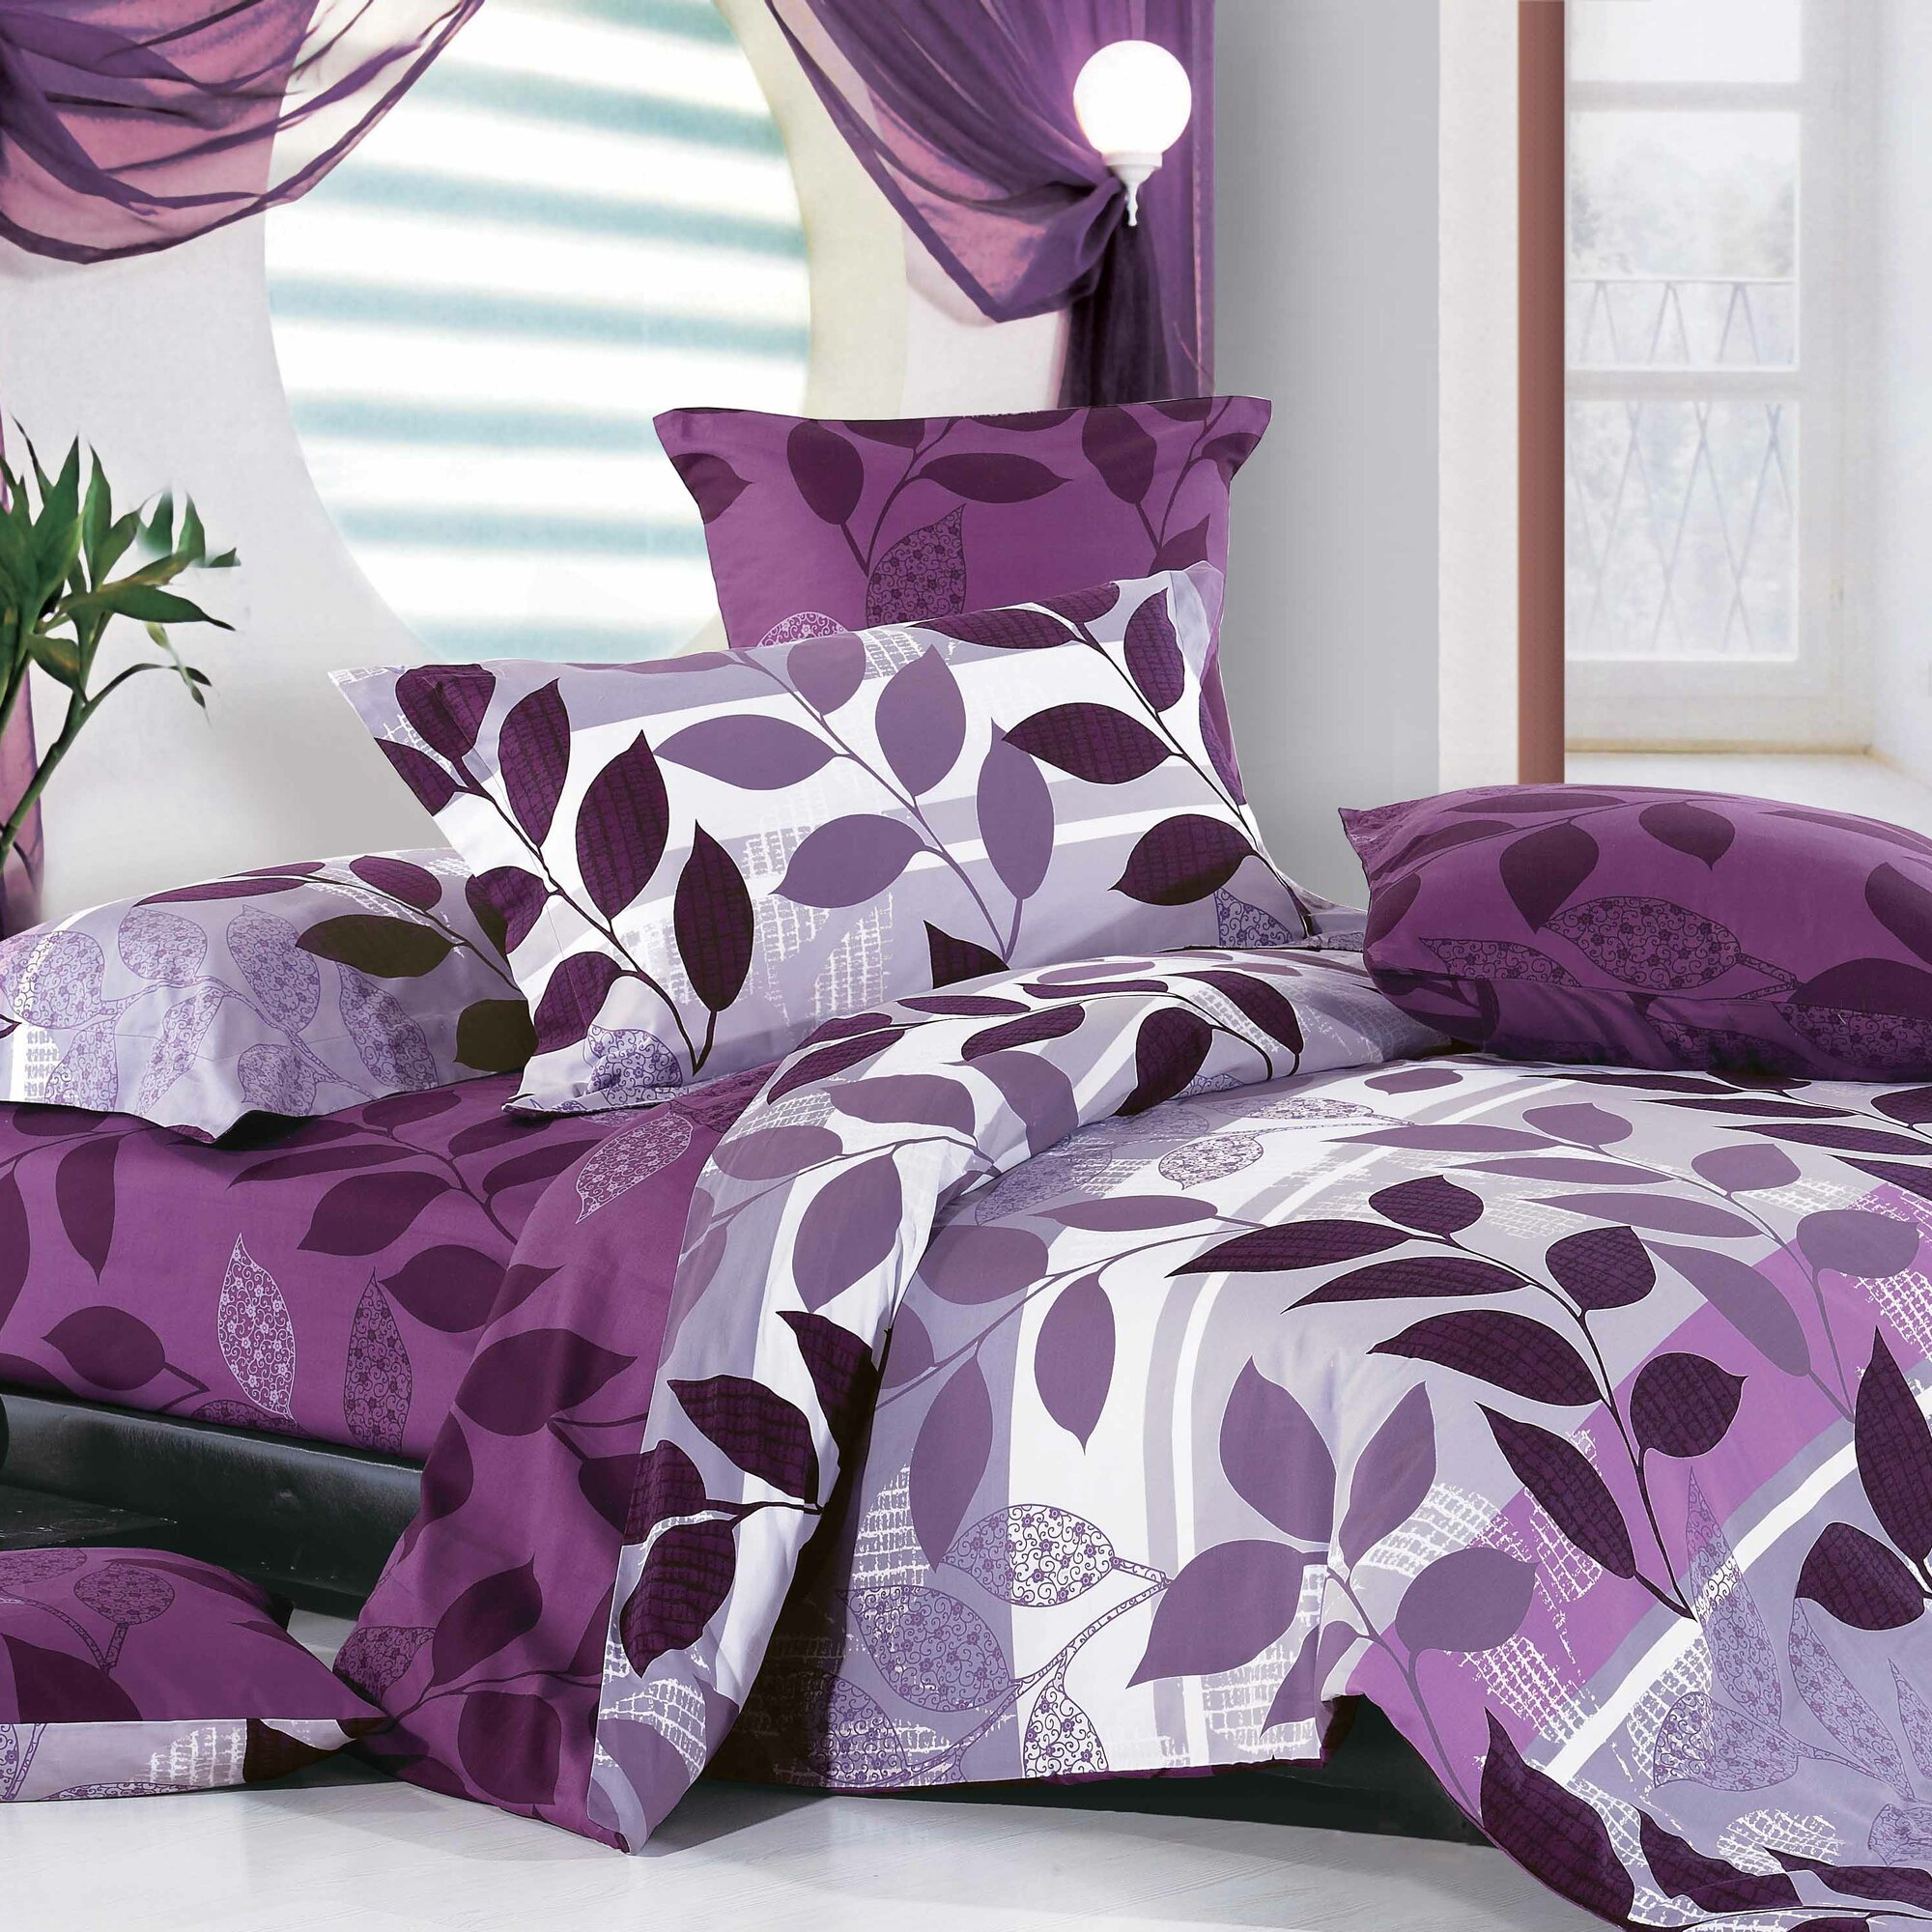 master accessories set awesome comforter ideas episode white paint wall walls large size eggplant int decorating sets deep bed episodeinteractive bedroom enchanting and purple